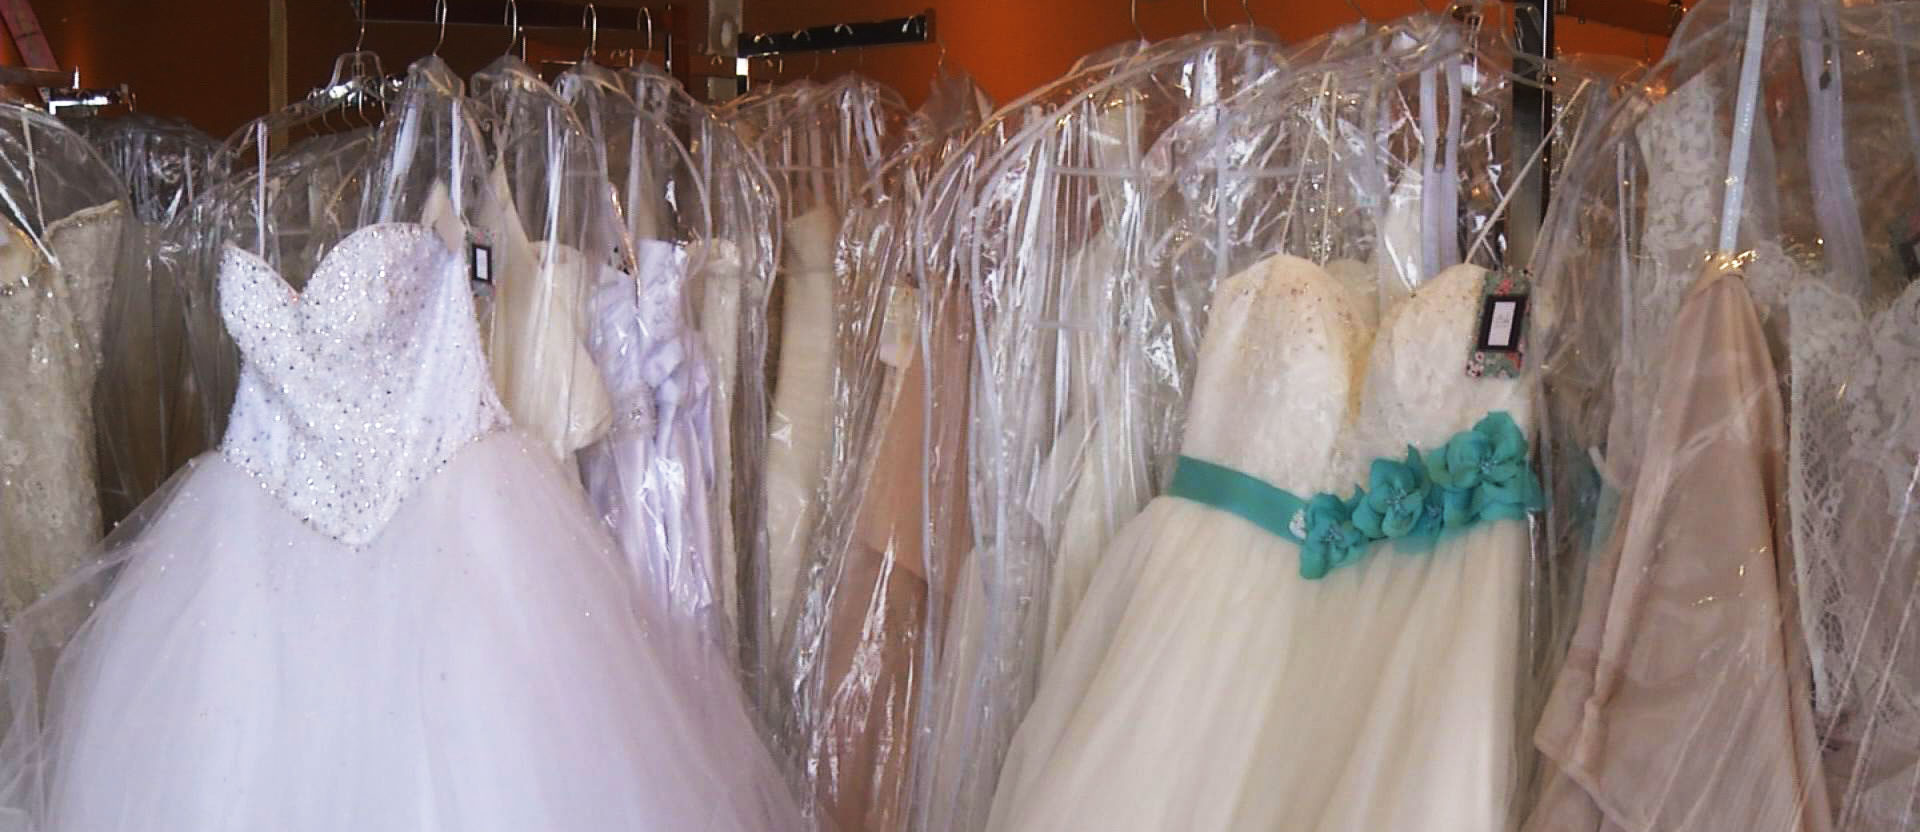 Wedding dress consignment store opens in sioux falls for Wedding dress resale shop